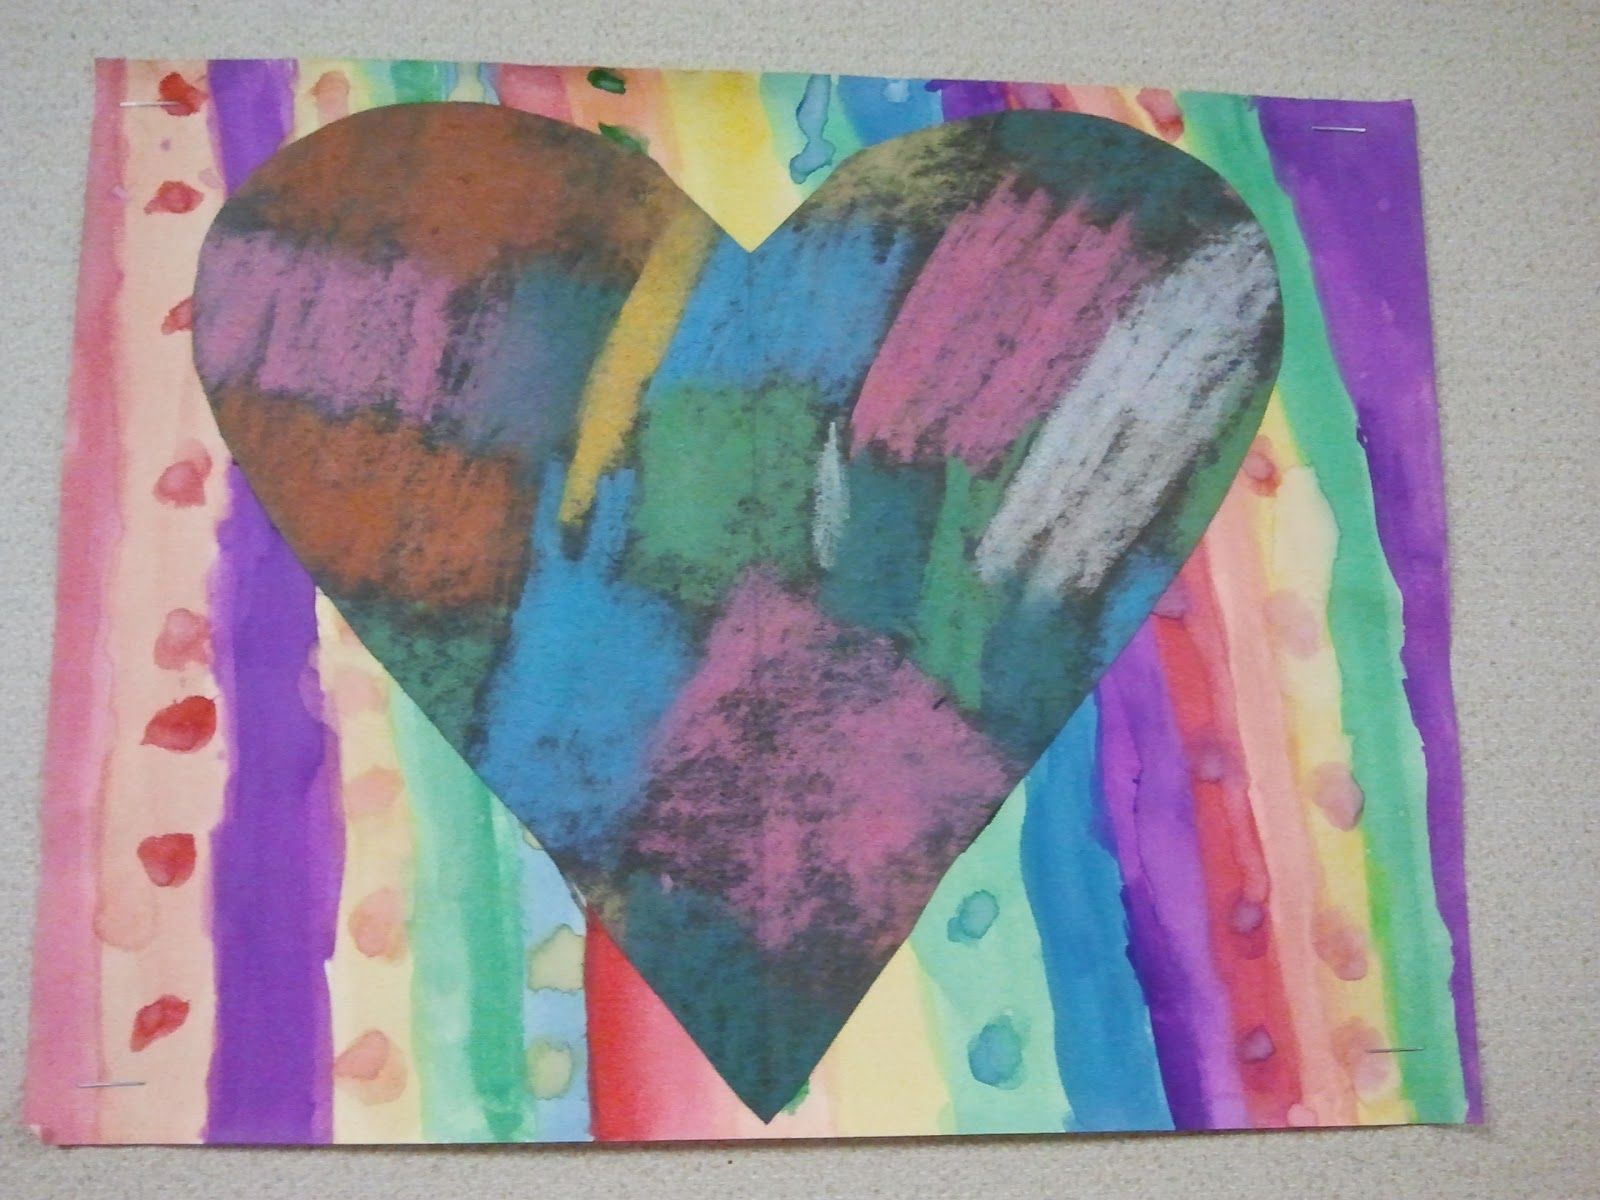 Parent Art Docents Jim Dine Inspired Hearts